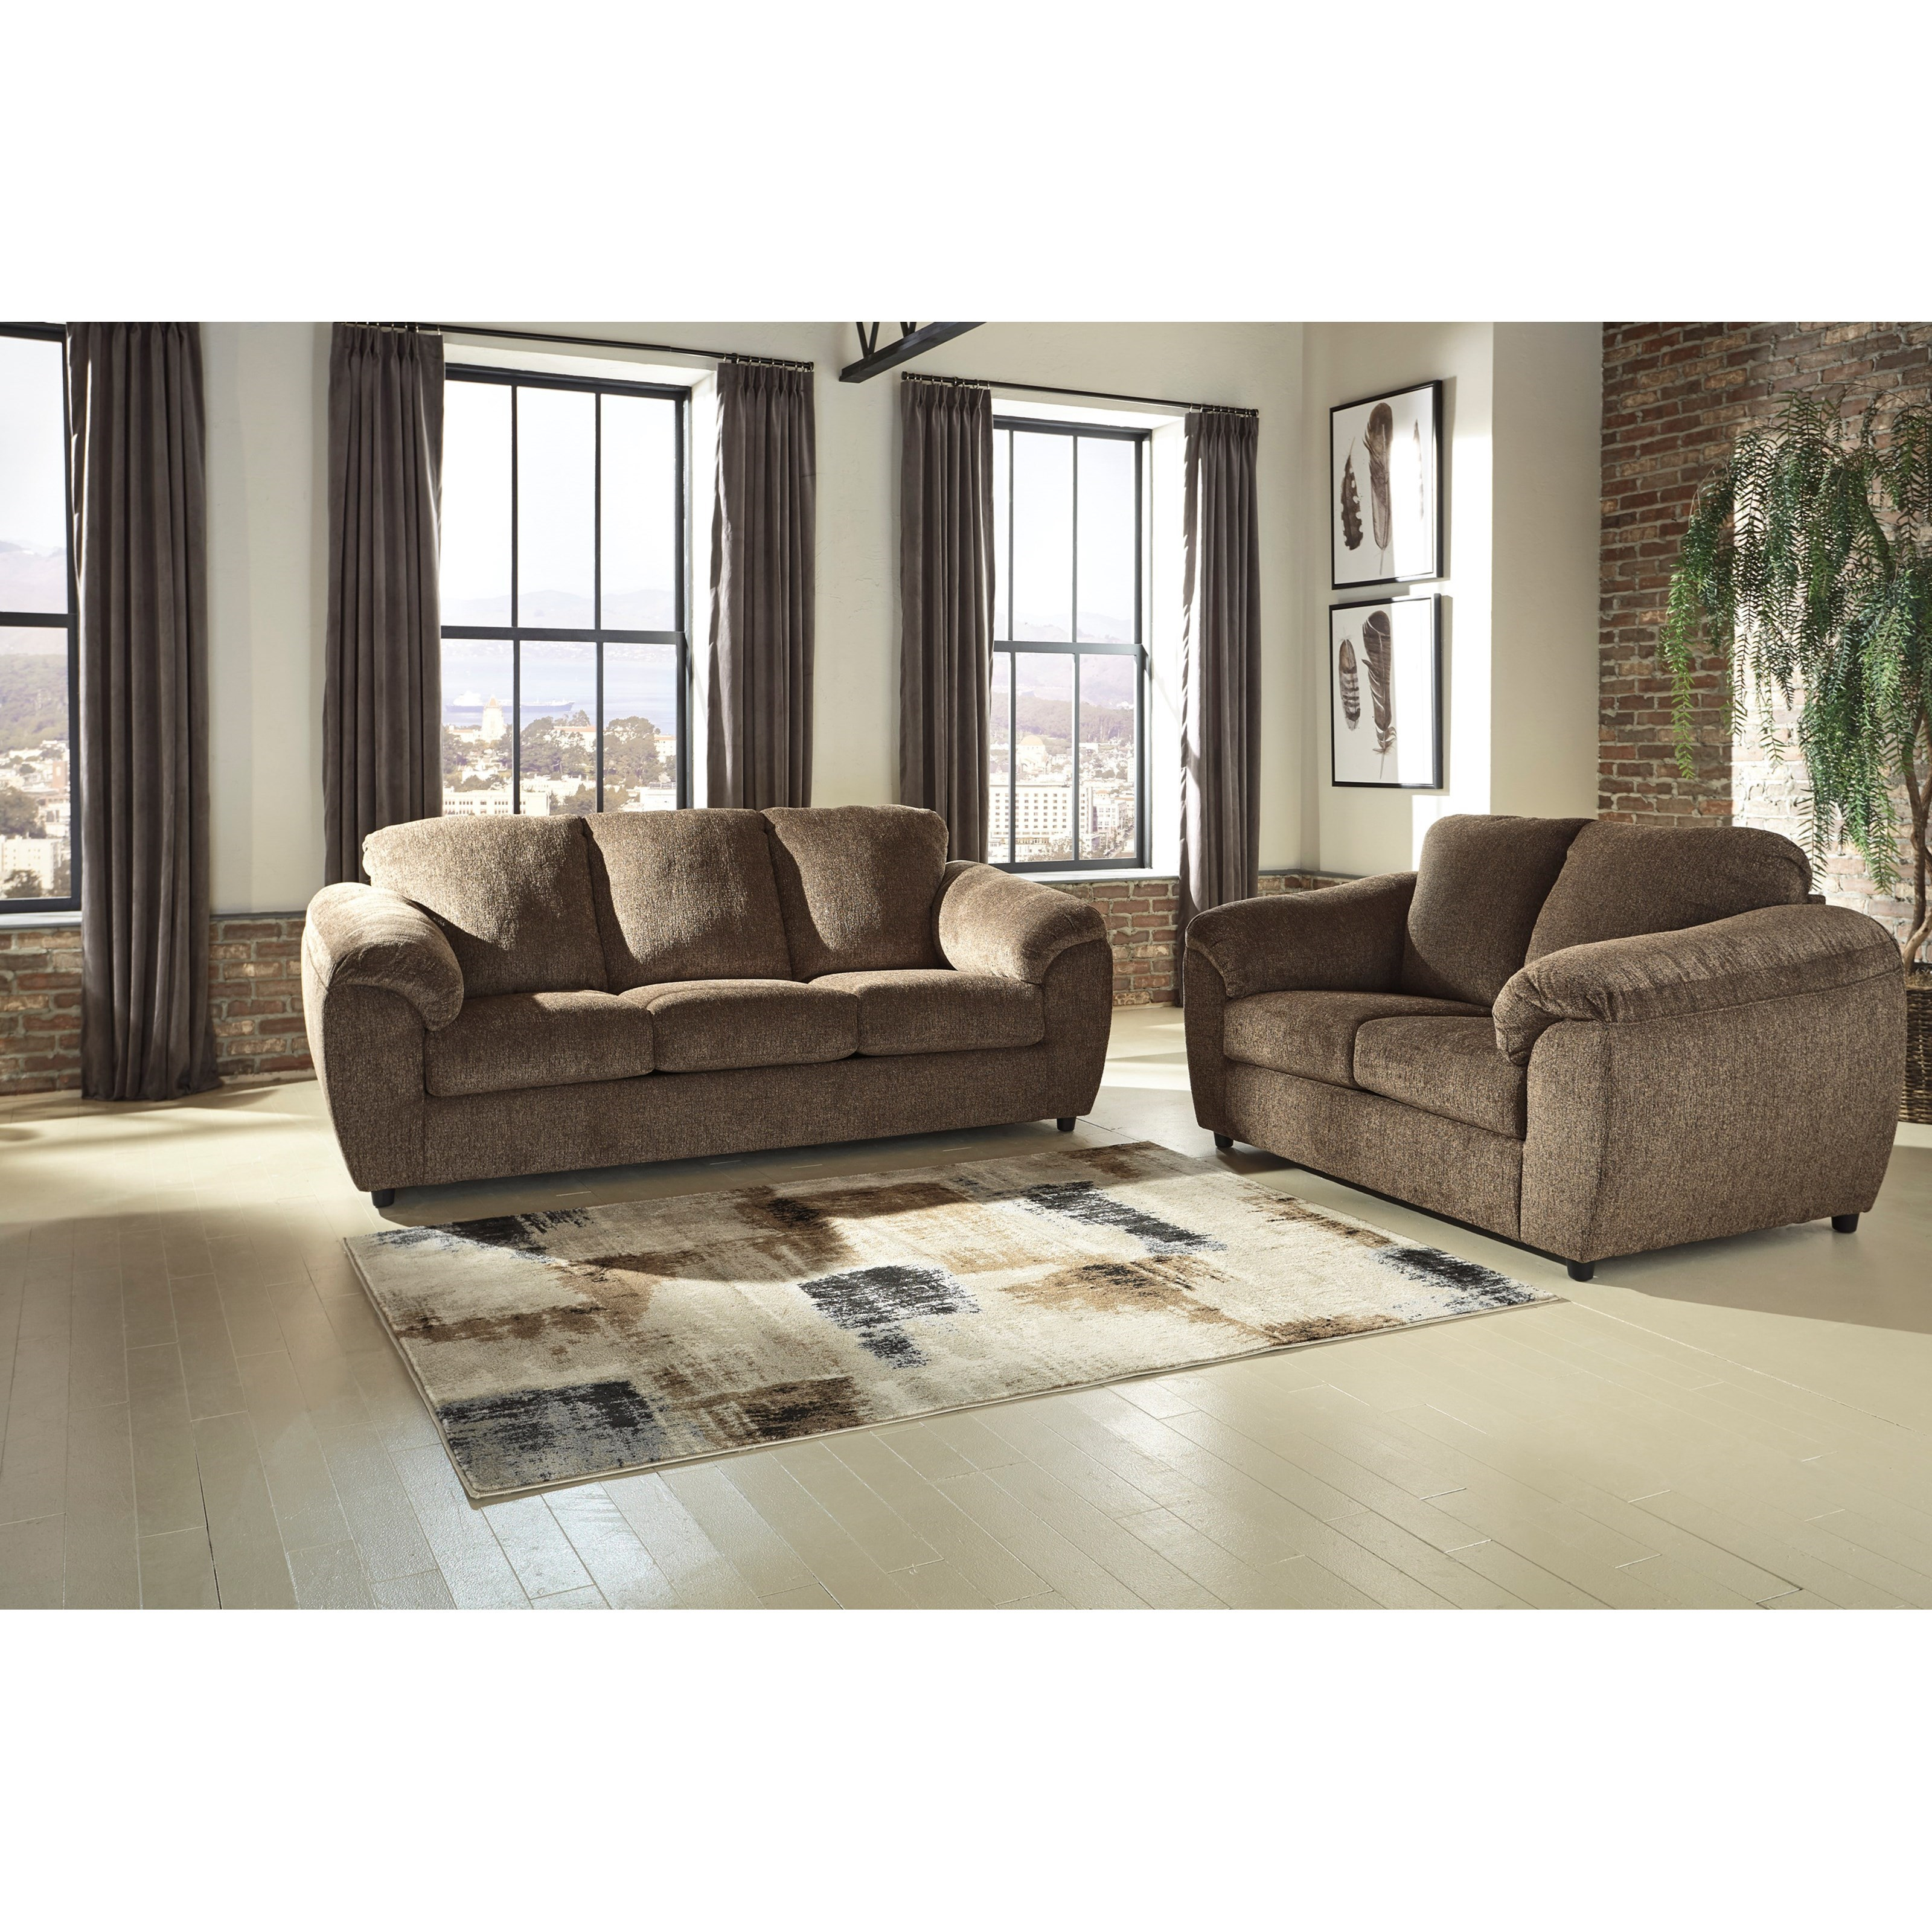 Signature design by ashley azaline stationary living room for Living room furniture groups